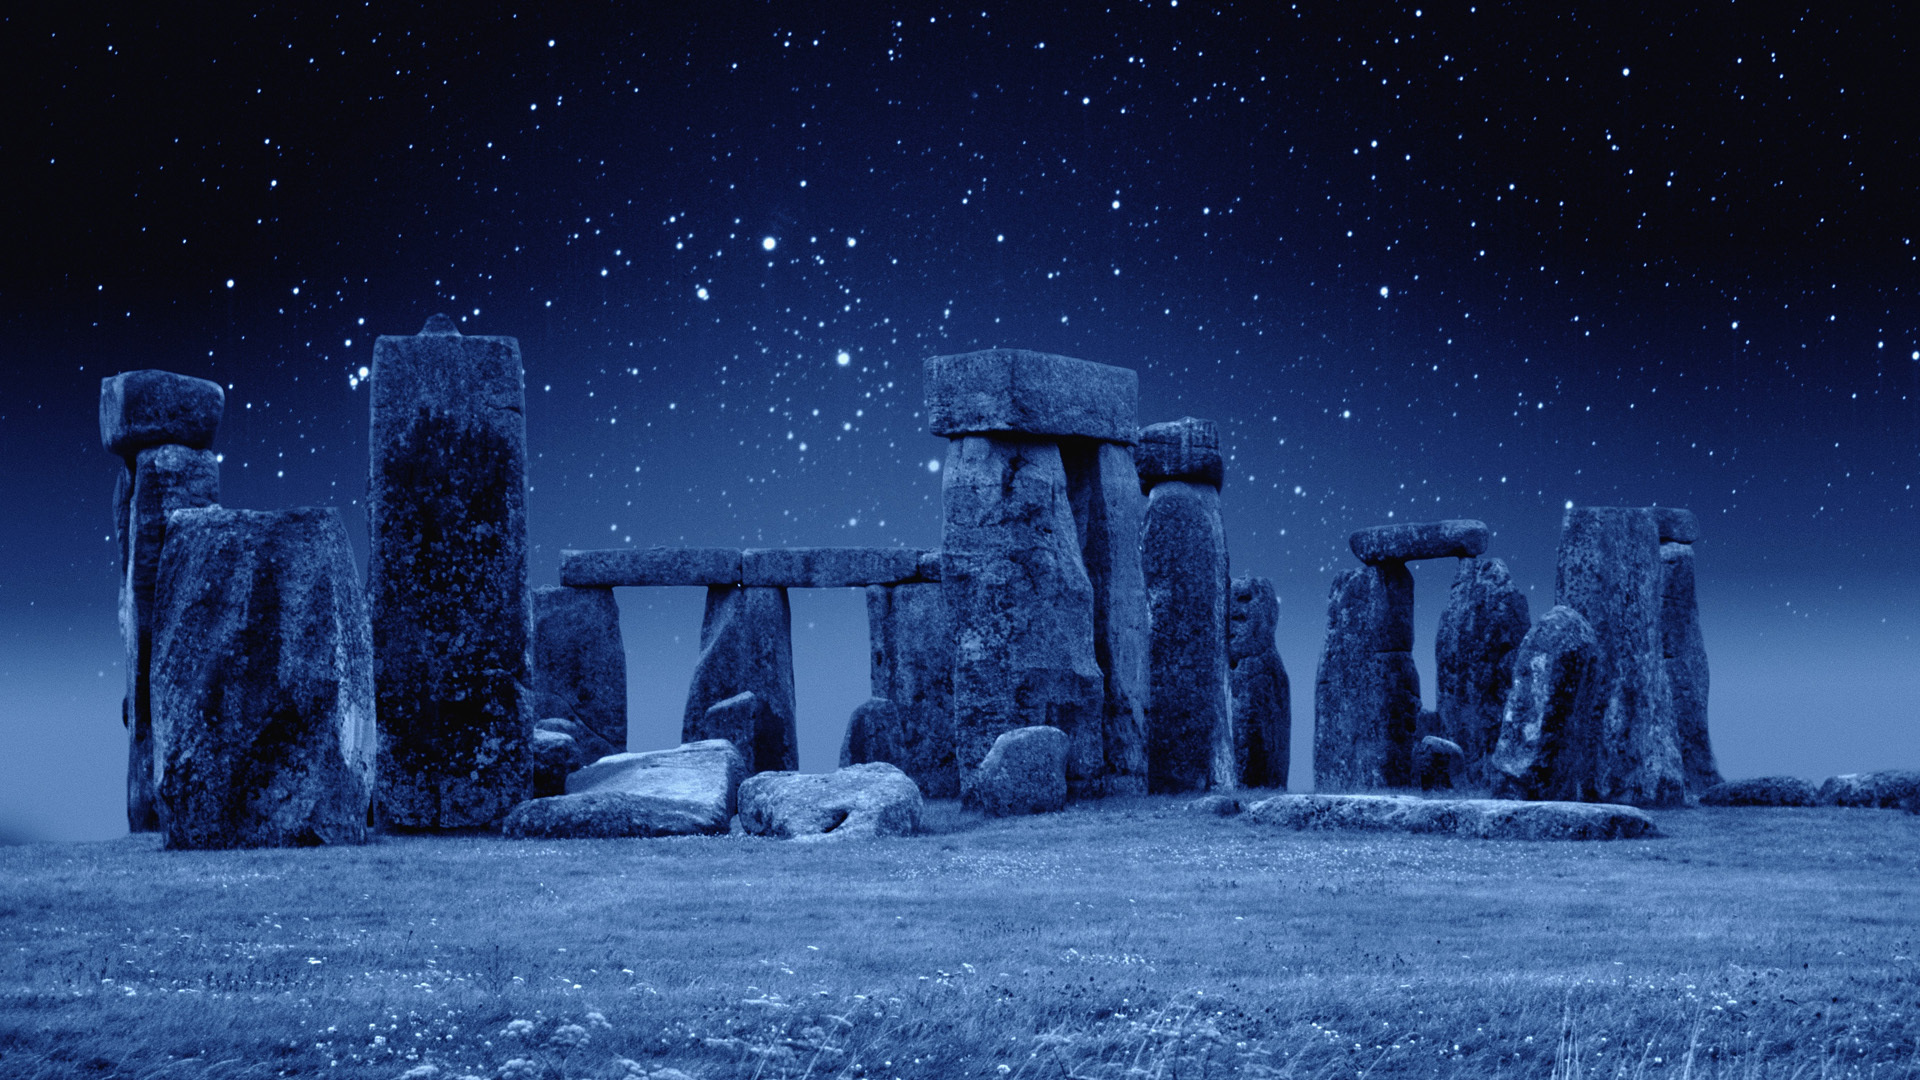 Stonehenge Wallpapers 1920x1080 px 5GN4T15   4USkY 1920x1080